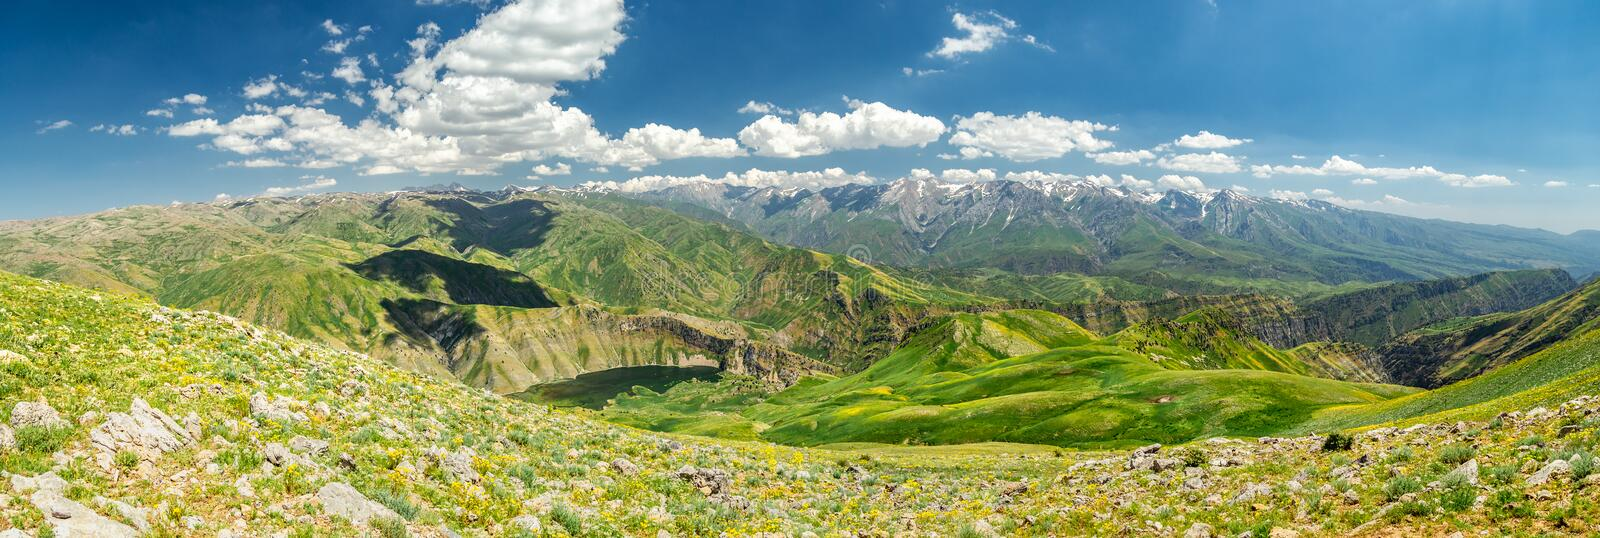 High mountain valley with lake peaks top view.  stock images